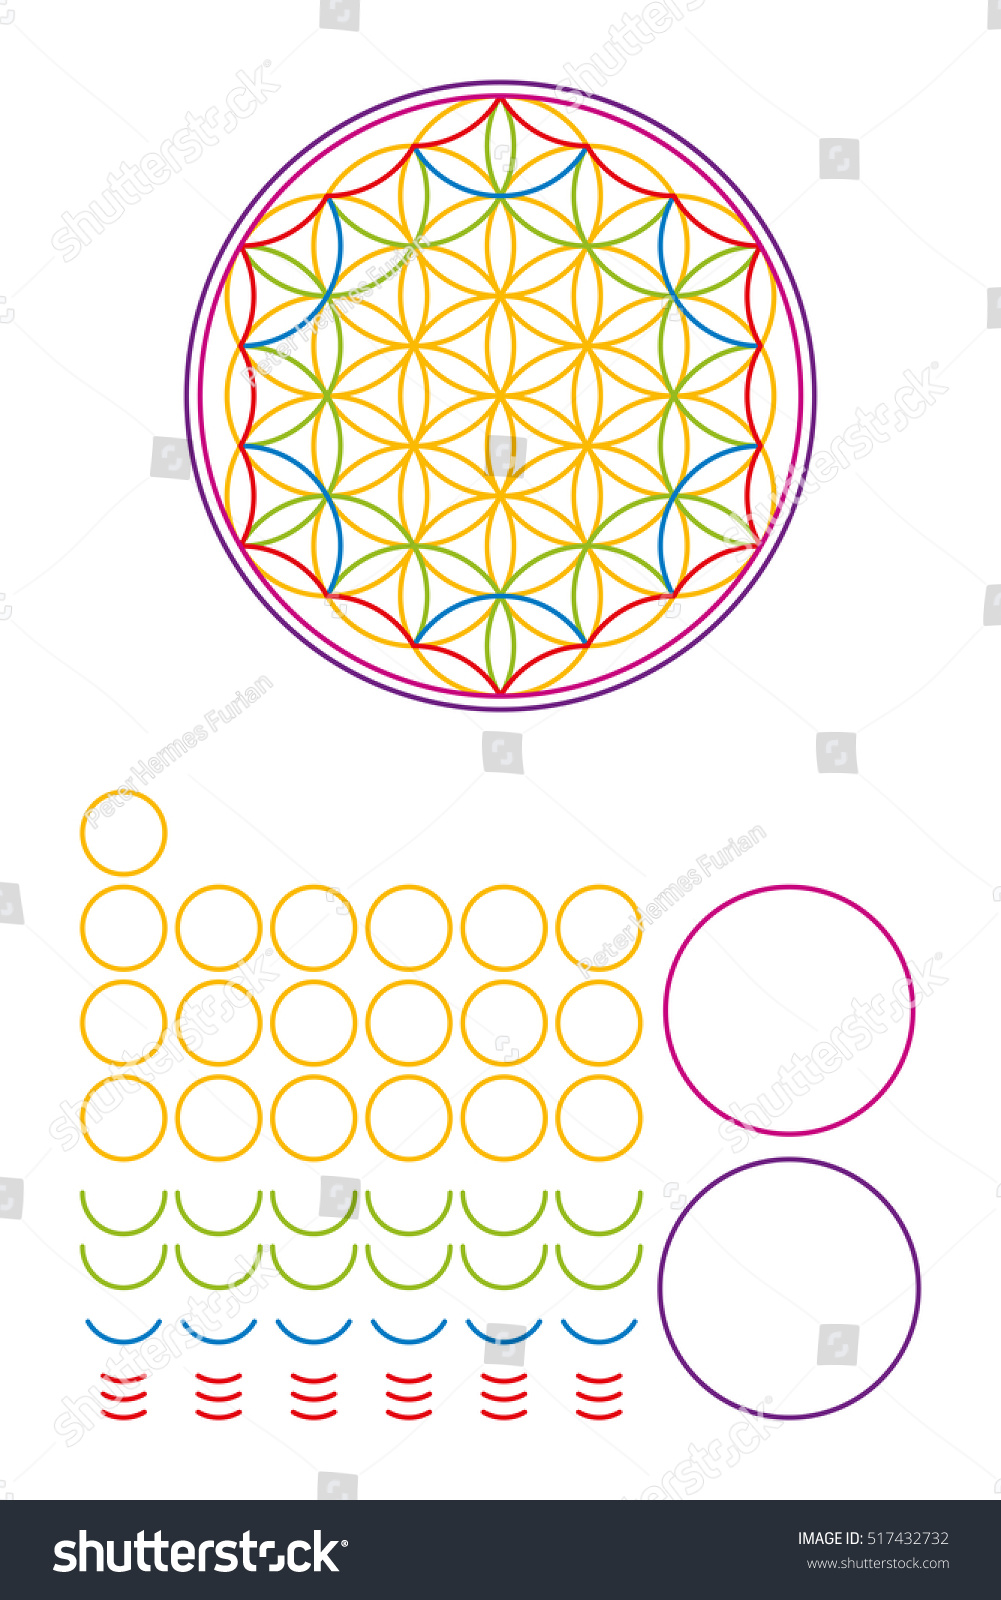 Golden Latin Cross Radial Dot Pattern Stock Vector Royalty Free